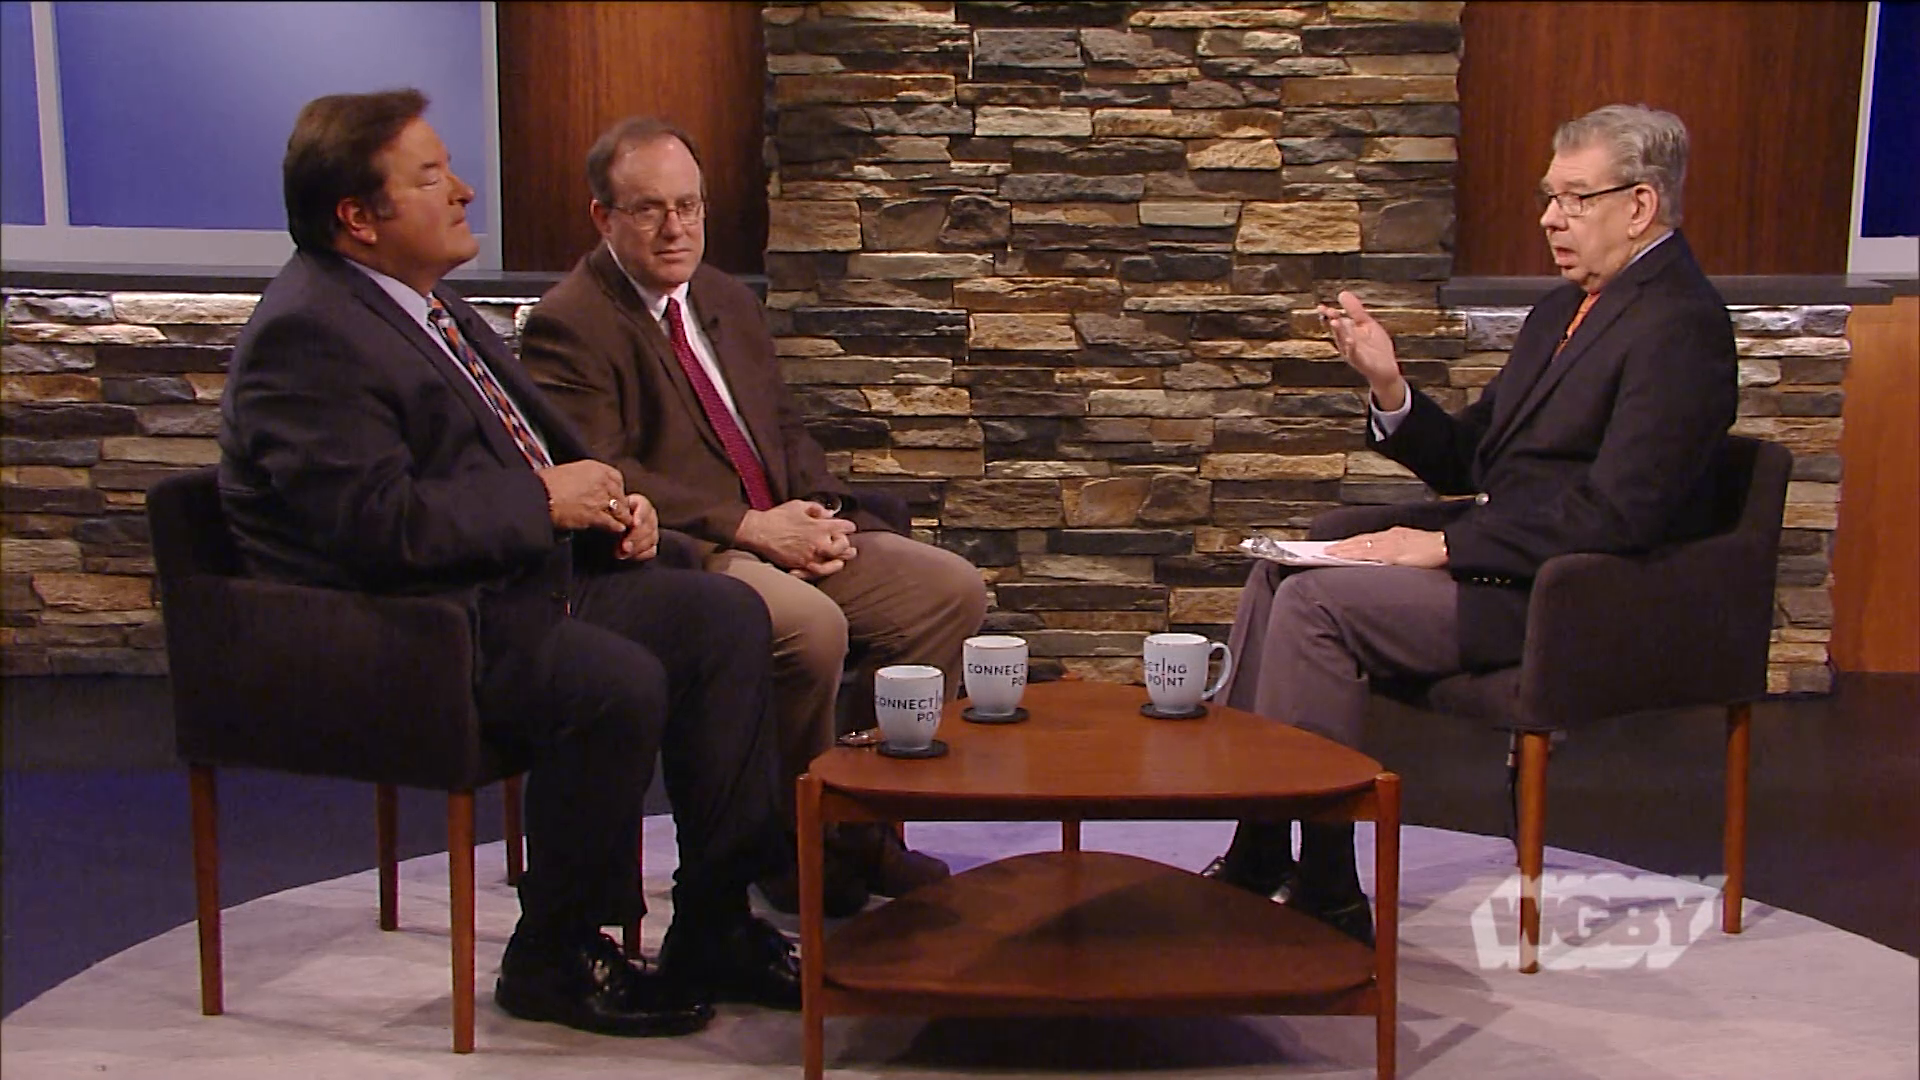 WNEU's Tim Vercellotti & Political Consultant Anthony Cignoli discuss Joe Biden entering the race for President and the Democrats' chances of beating Trump.